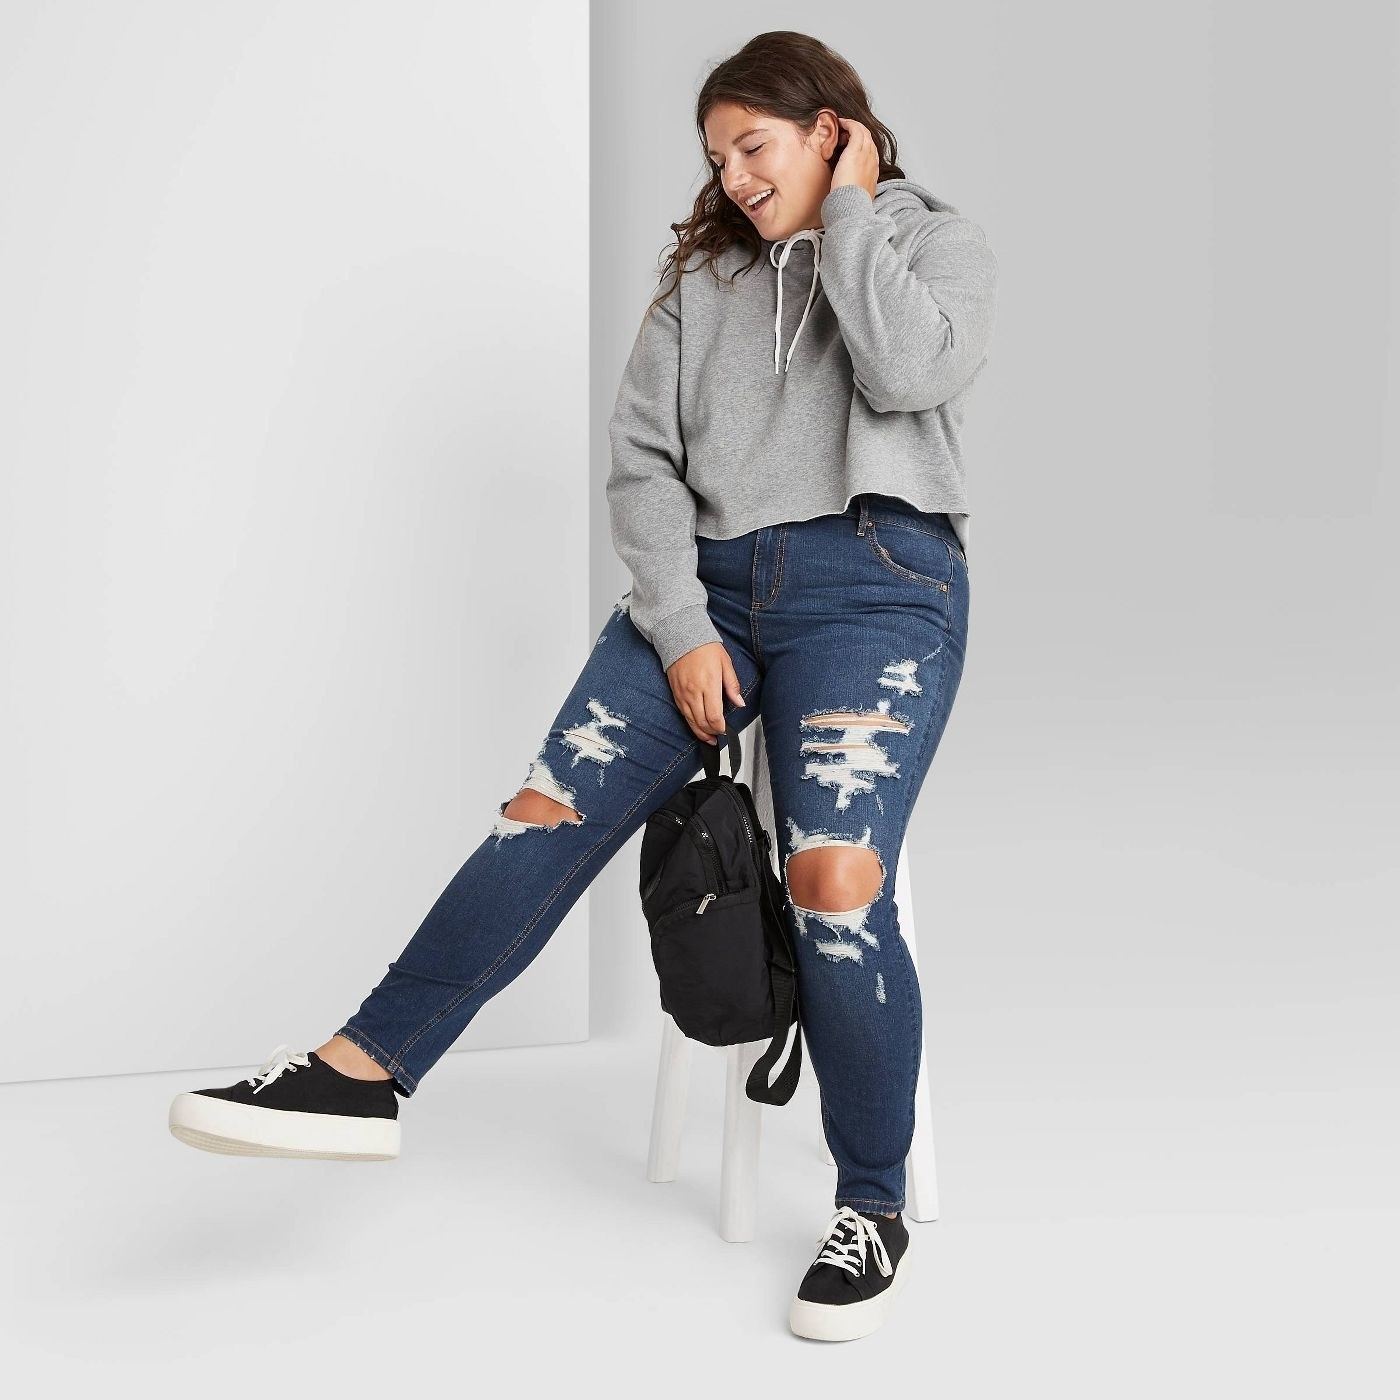 Model wearing the distressed blue jeans